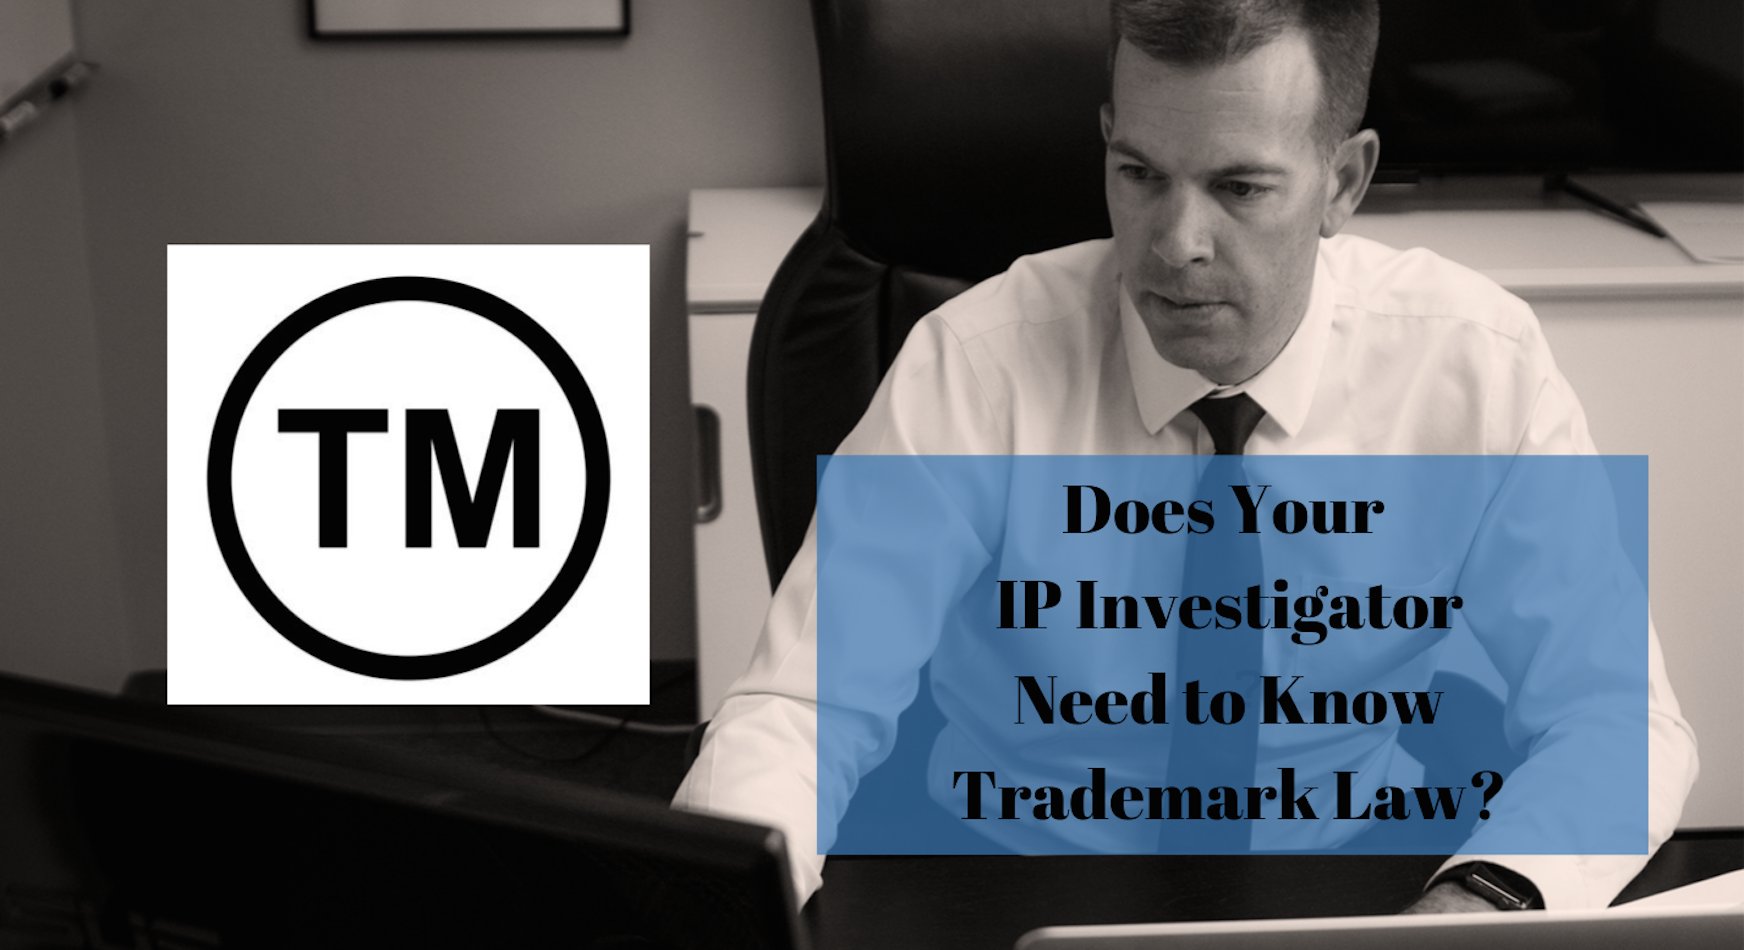 Does Your Intellectual Property Investigator Need to Know Trademark Law